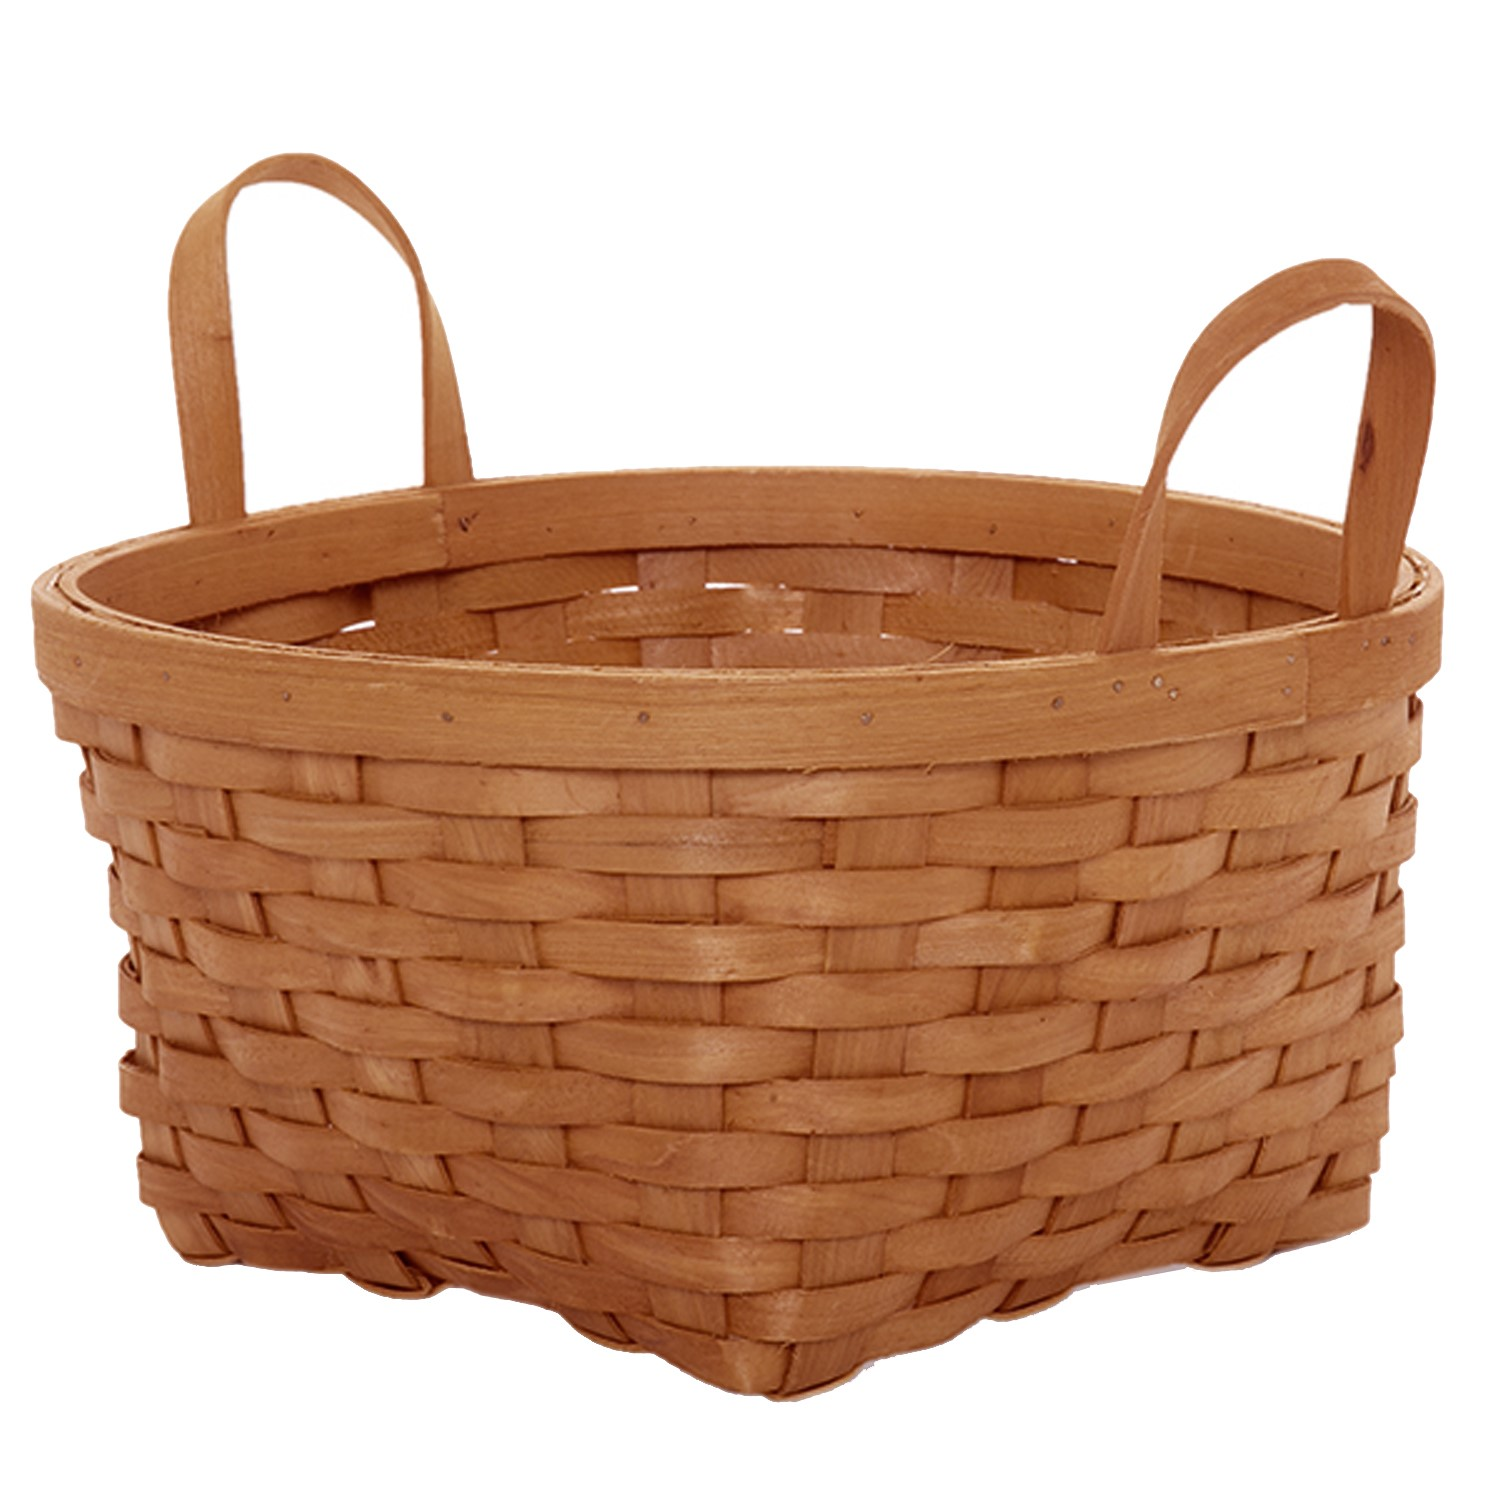 Classic Woodchip Weave Basket with Ear Handles - Large 11in